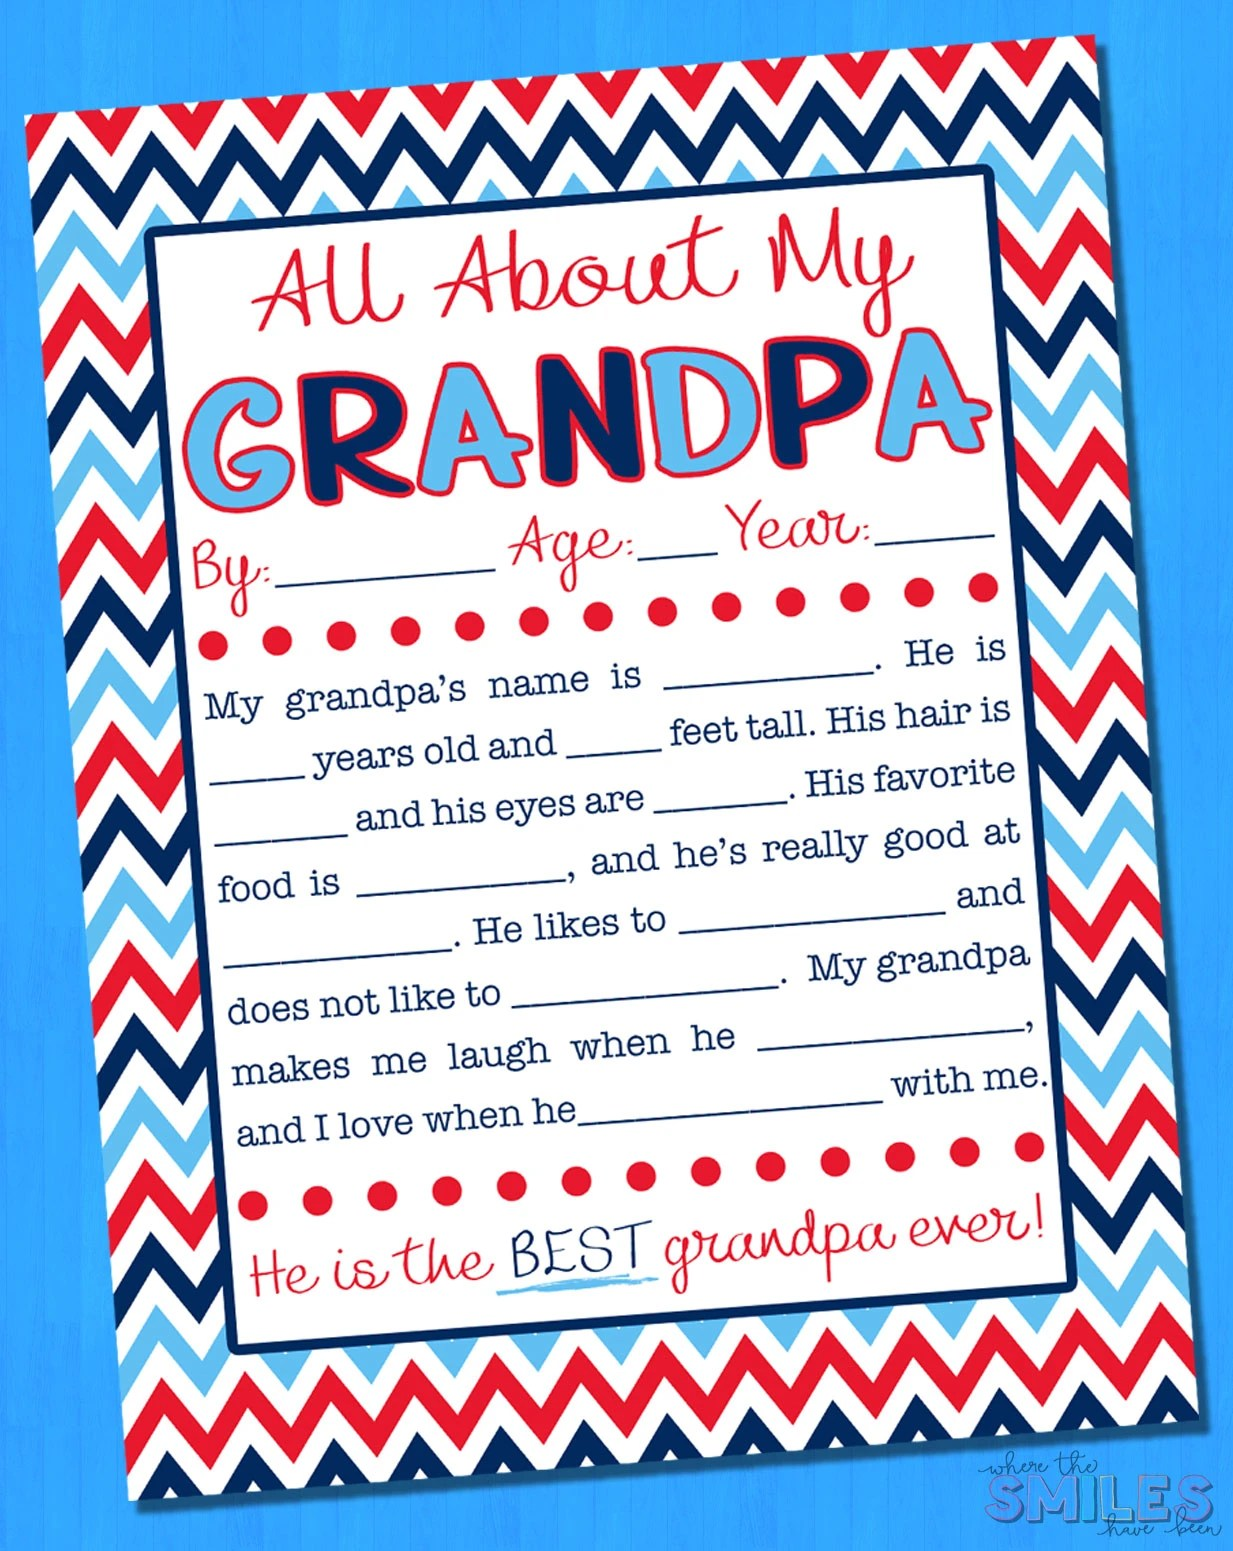 photo about Grandpa Questionnaire Printable titled All Over My Grandpa Job interview with Free of charge Printable 8